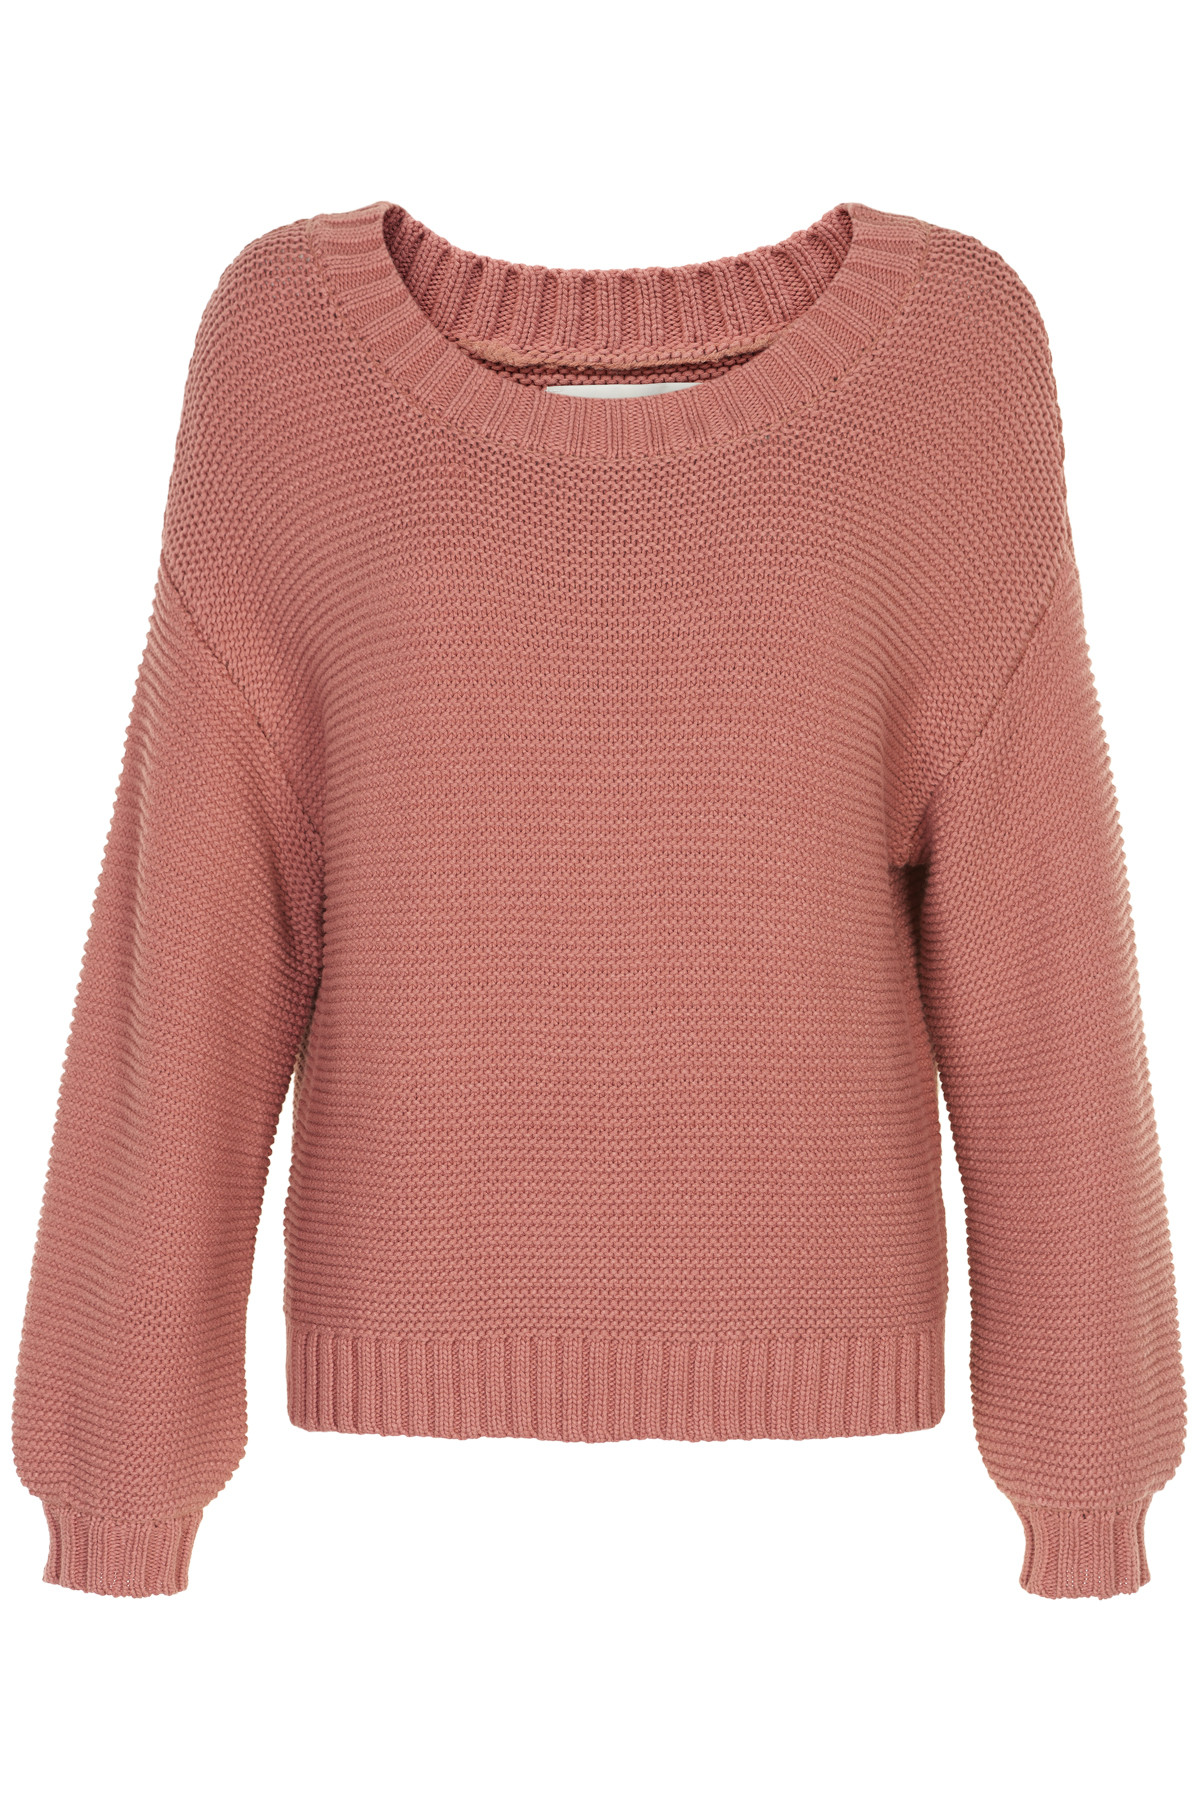 Image of   AND LESS RAIMONDO PULLOVER 5219206 A (Ash Rose, L)